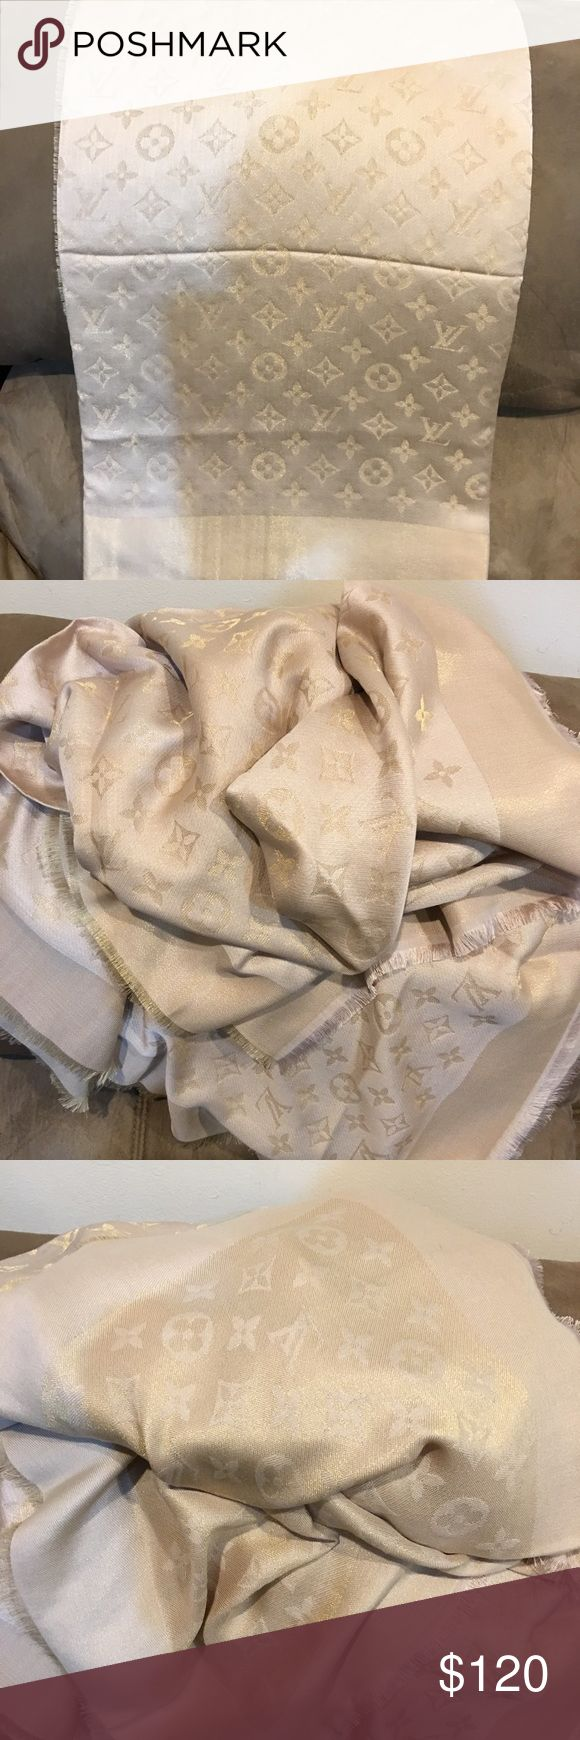 LV Scarf LV scarf. Size 140 cm by 140 cm. Cream color. Very beautiful scarf. Price reflects authenticity. Accessories Scarves & Wraps